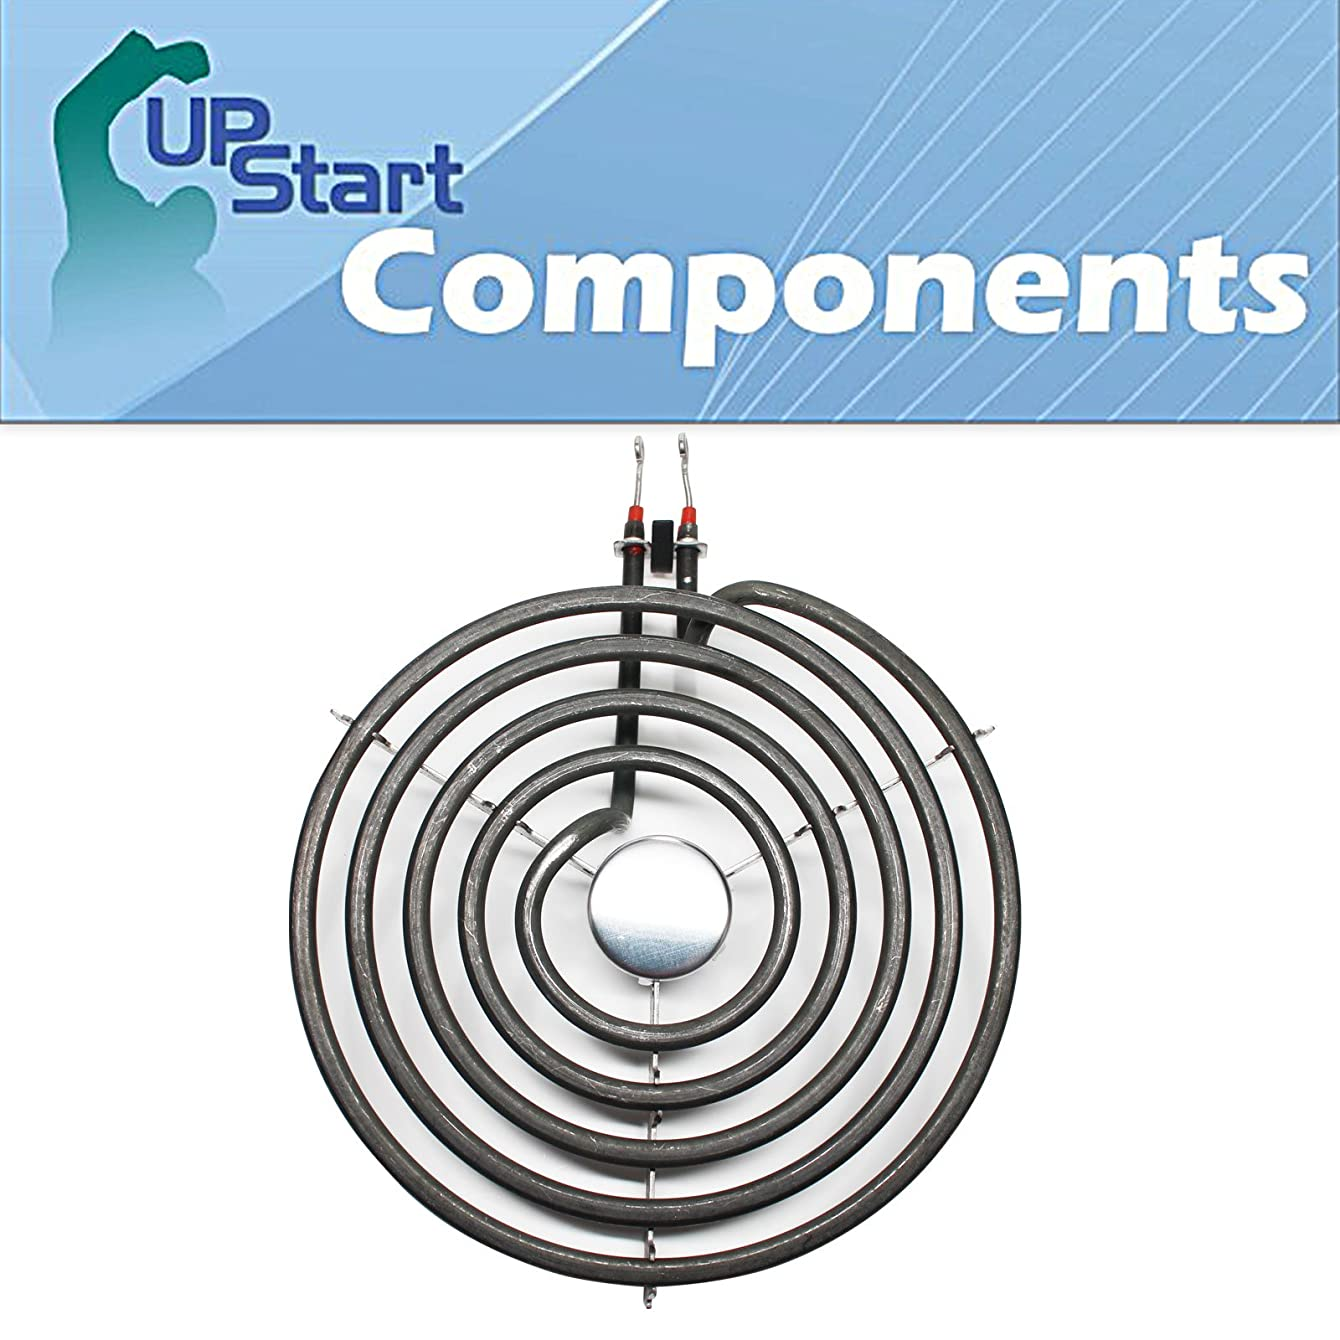 Replacement Whirlpool RF263LXTS1 8 inch 5 Turns Surface Burner Element - Compatible Whirlpool 9761345 Heating Element for Range, Stove & Cooktop